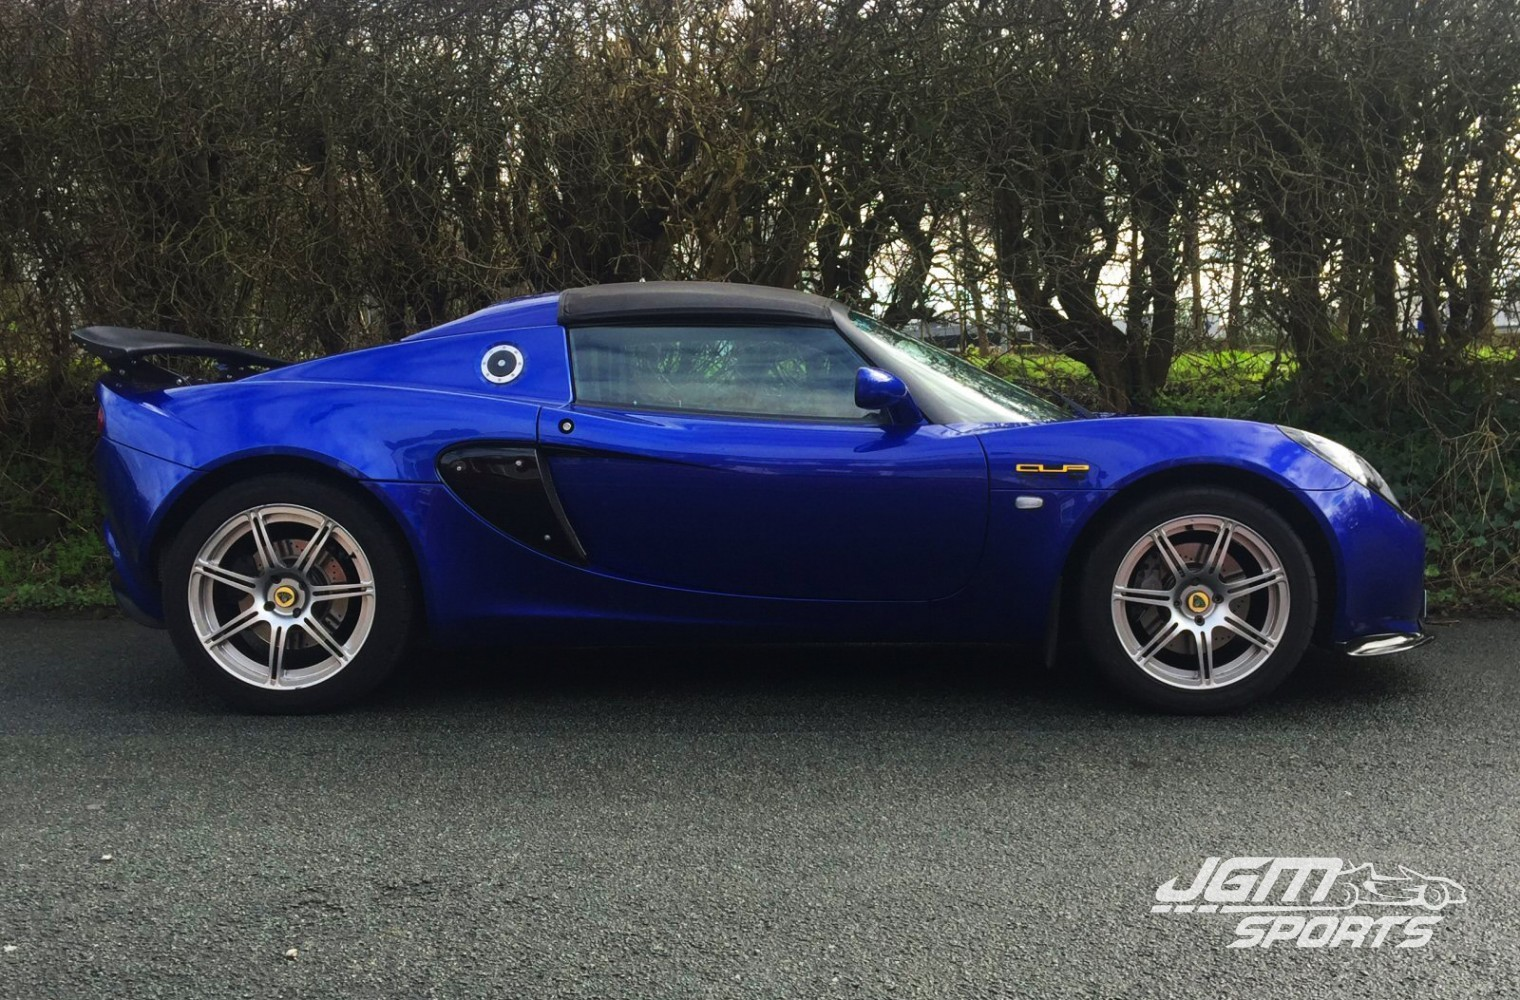 2007 S2 LOTUS ELISE S ONLY 13K MILES WITH EXIGE FORGED WHEELS ...